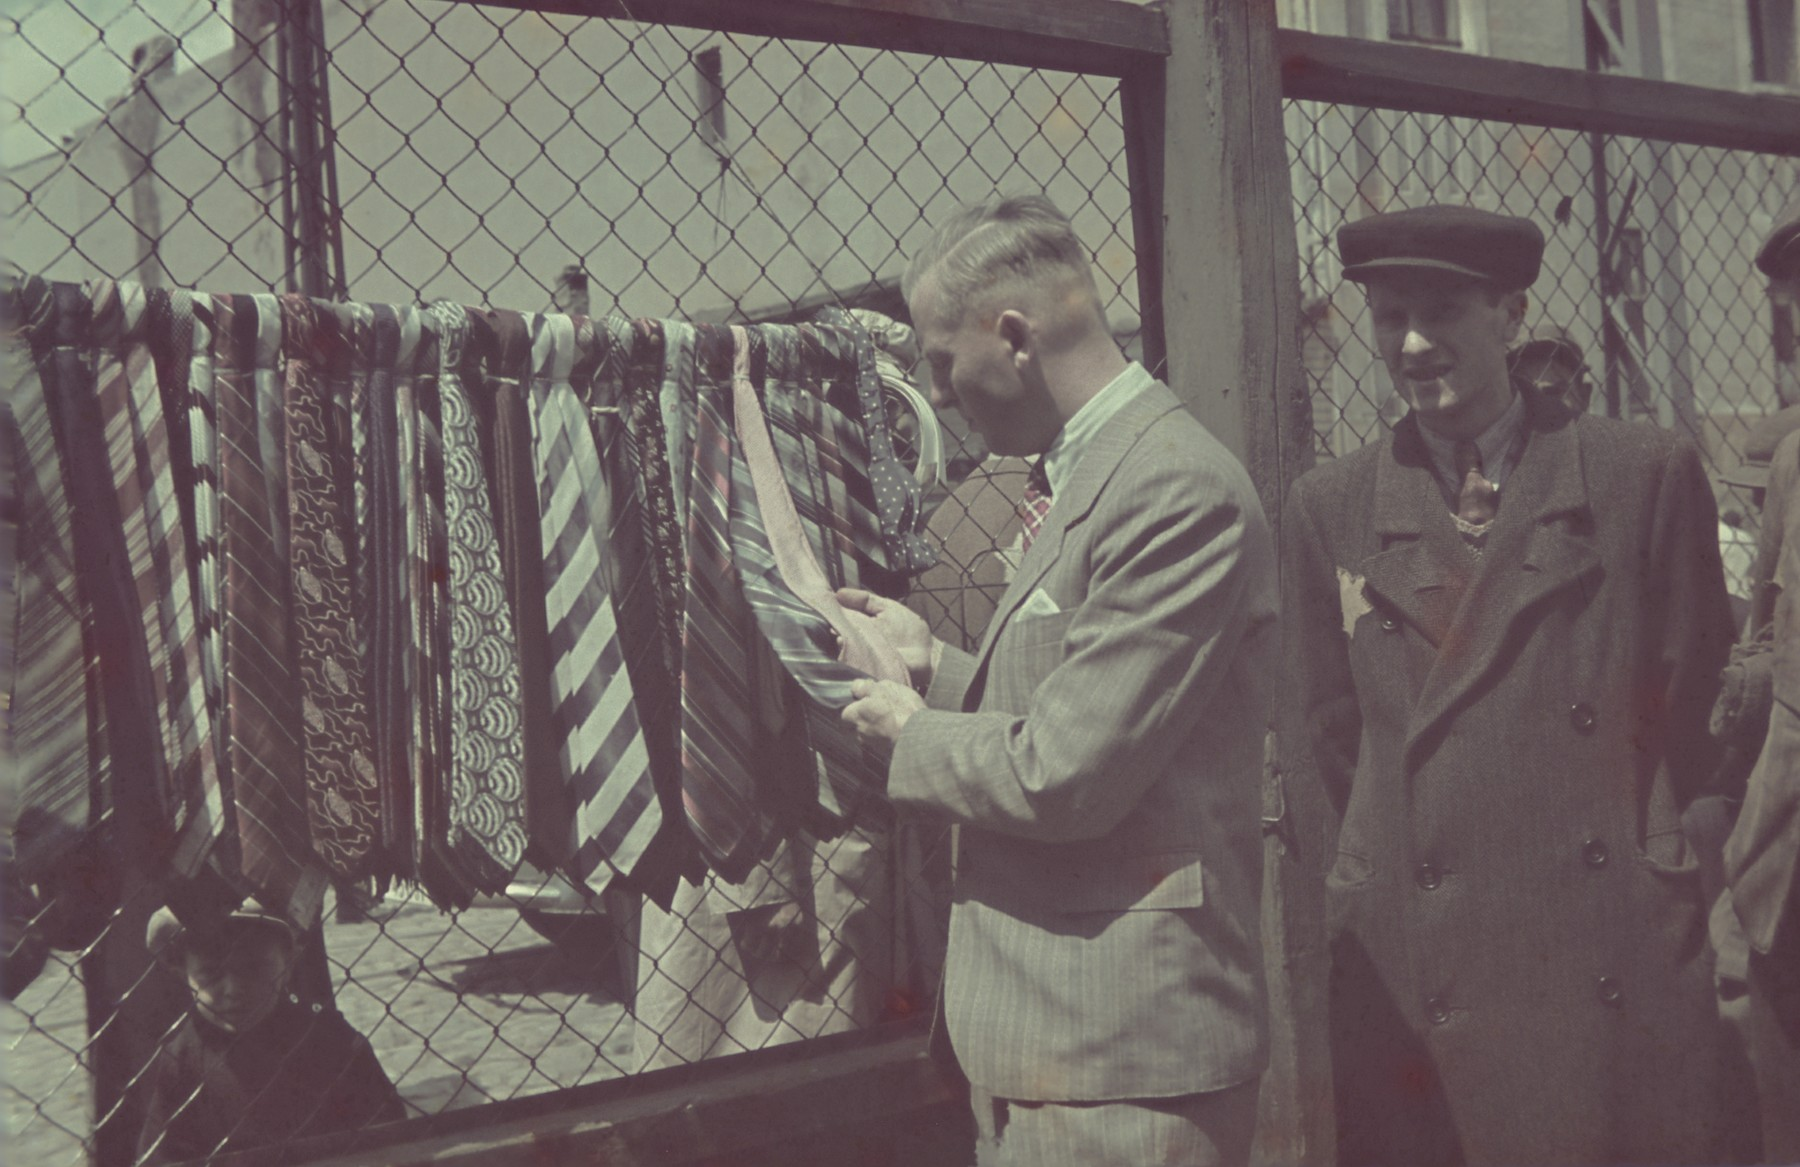 Ghetto administrator, Hans Biebow examines some ties for sale in the outdoor market of the Lodz ghetto.